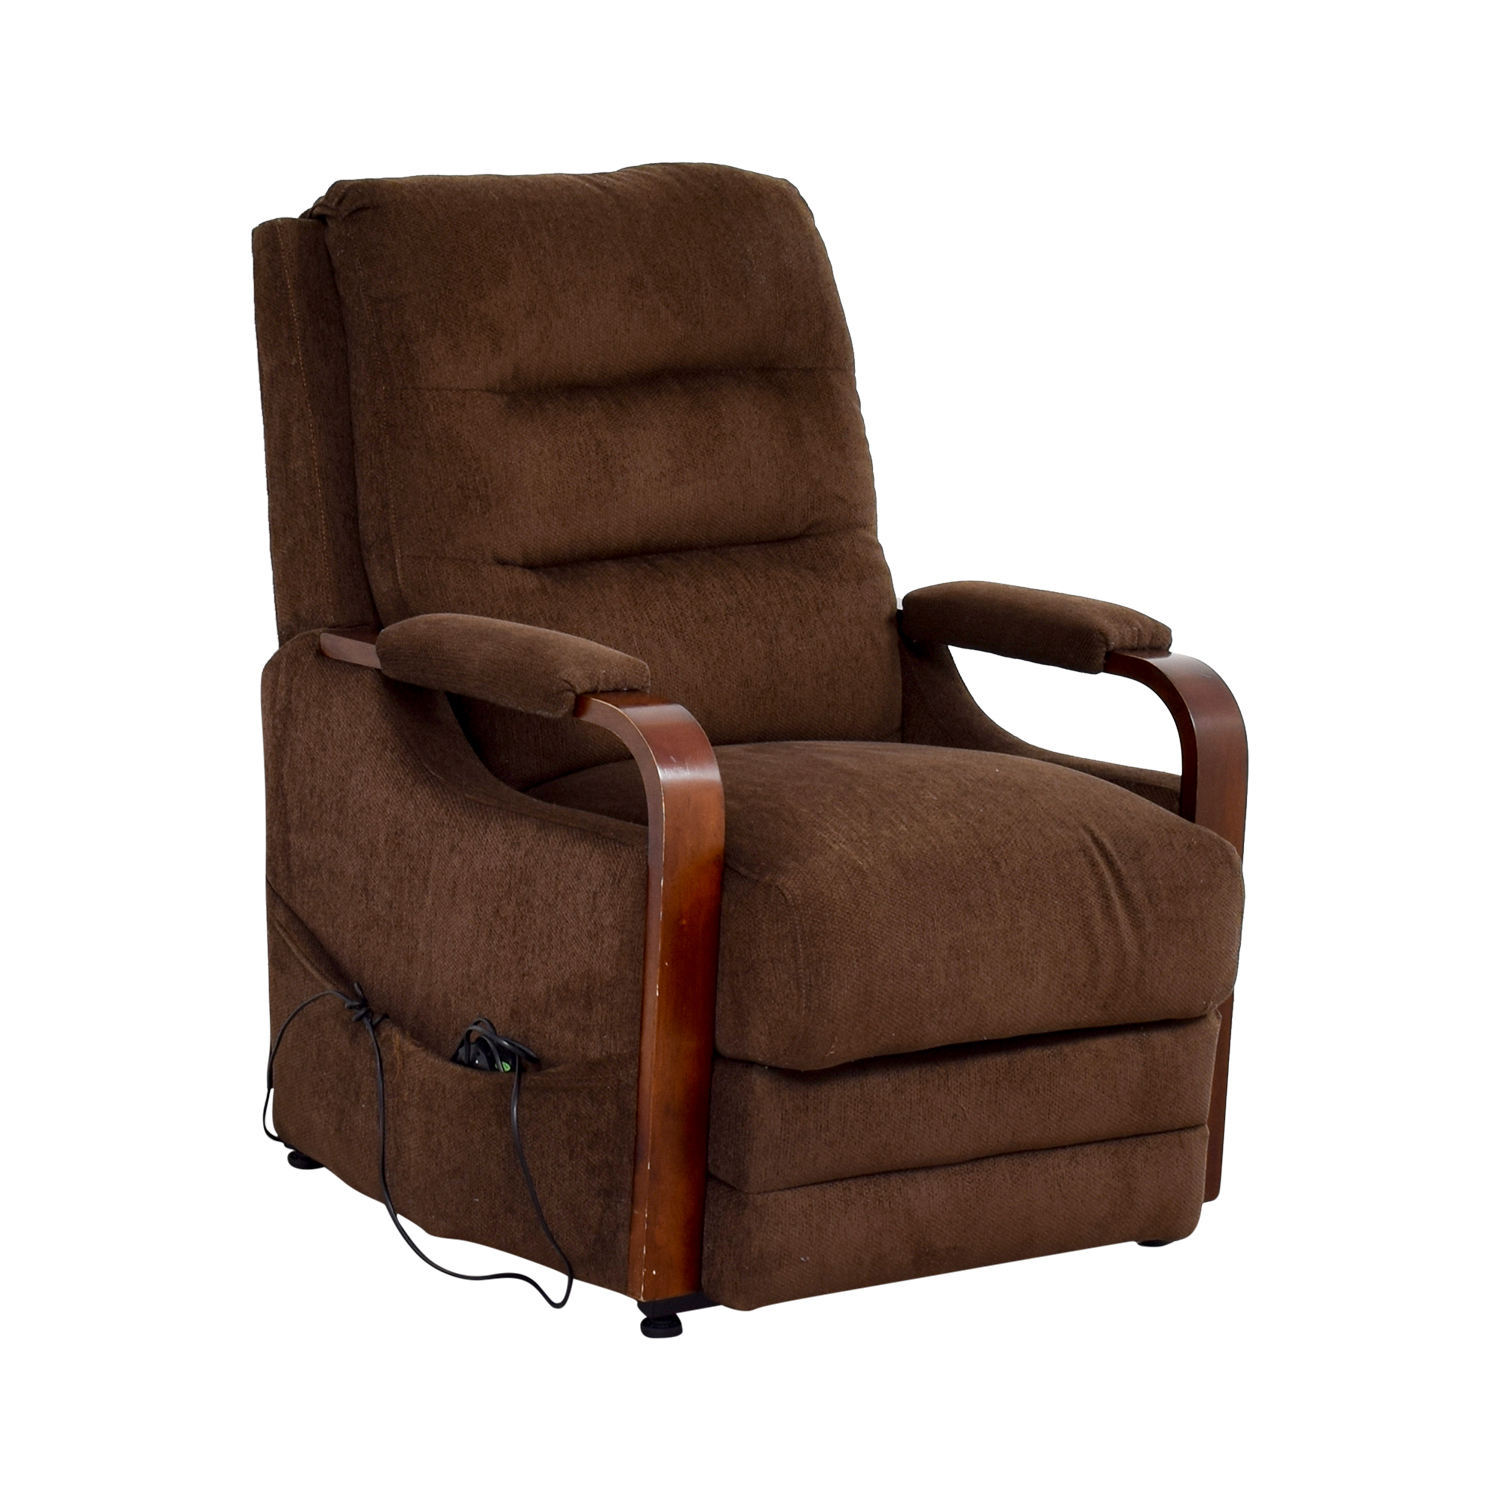 cheap hand chair kids game chairs 90 off bob 39s furniture brown recliner